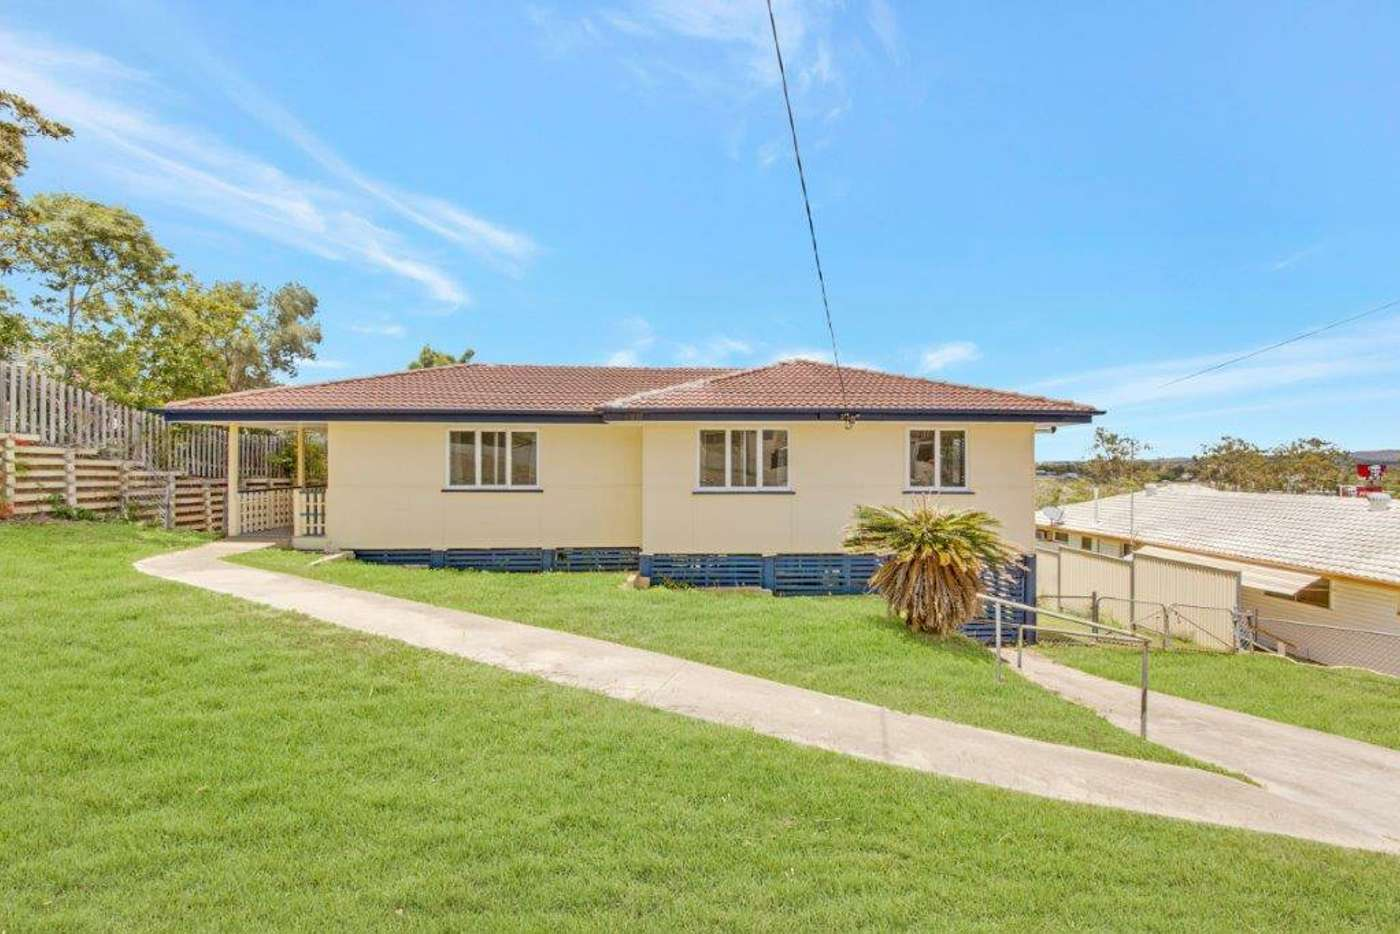 Main view of Homely house listing, 25 Hunter Street, West Gladstone QLD 4680